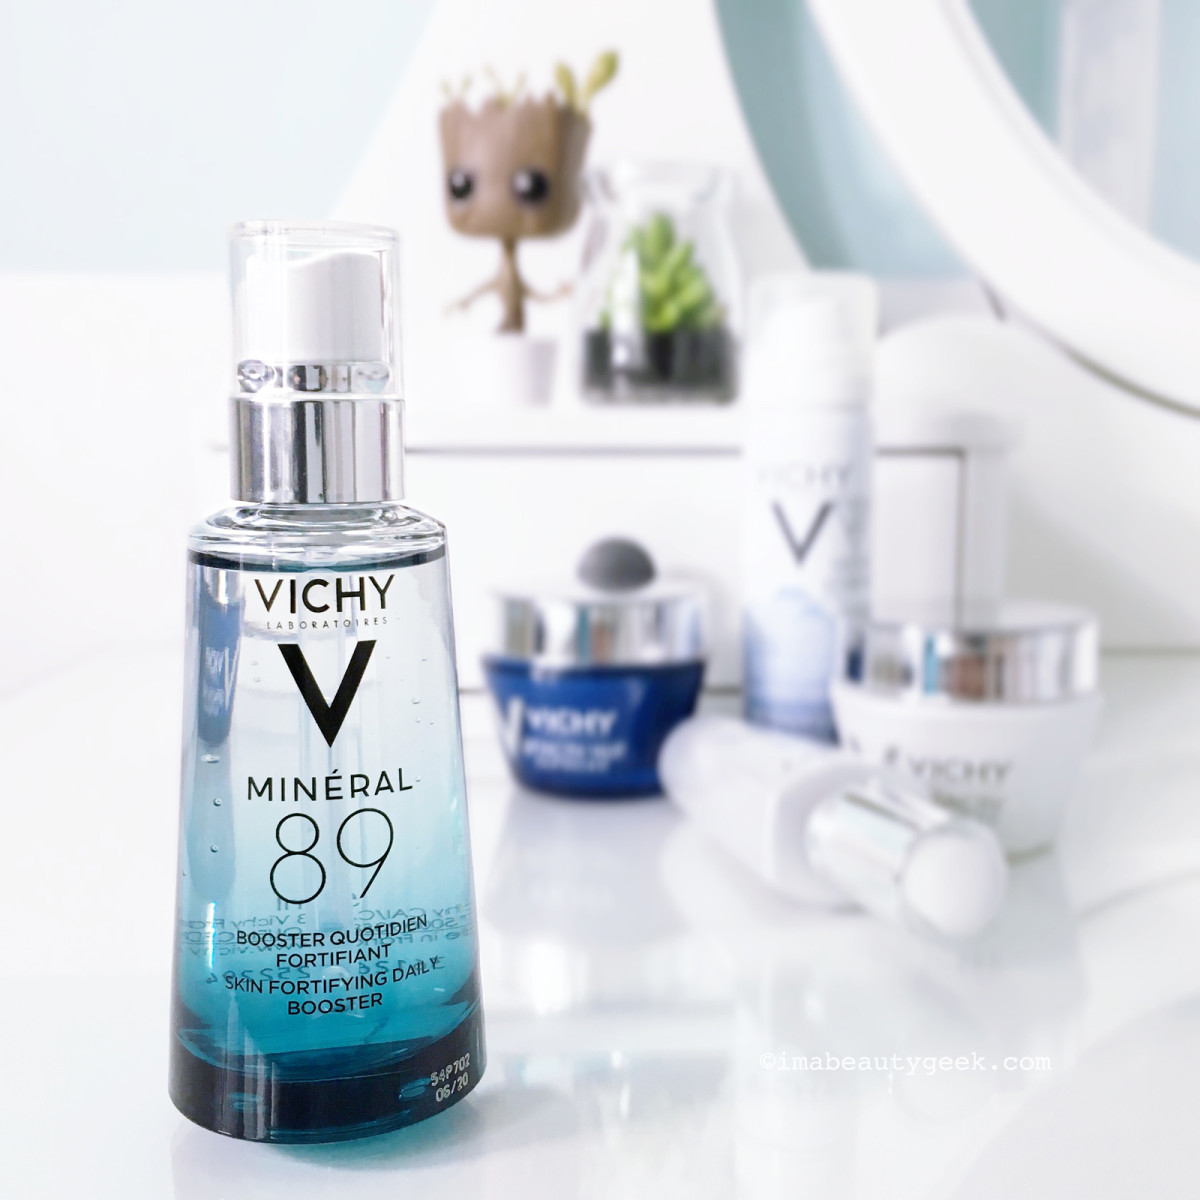 Vichy Mineral 89 booster + skincare regimen giveaway-BEAUTYGEEKS